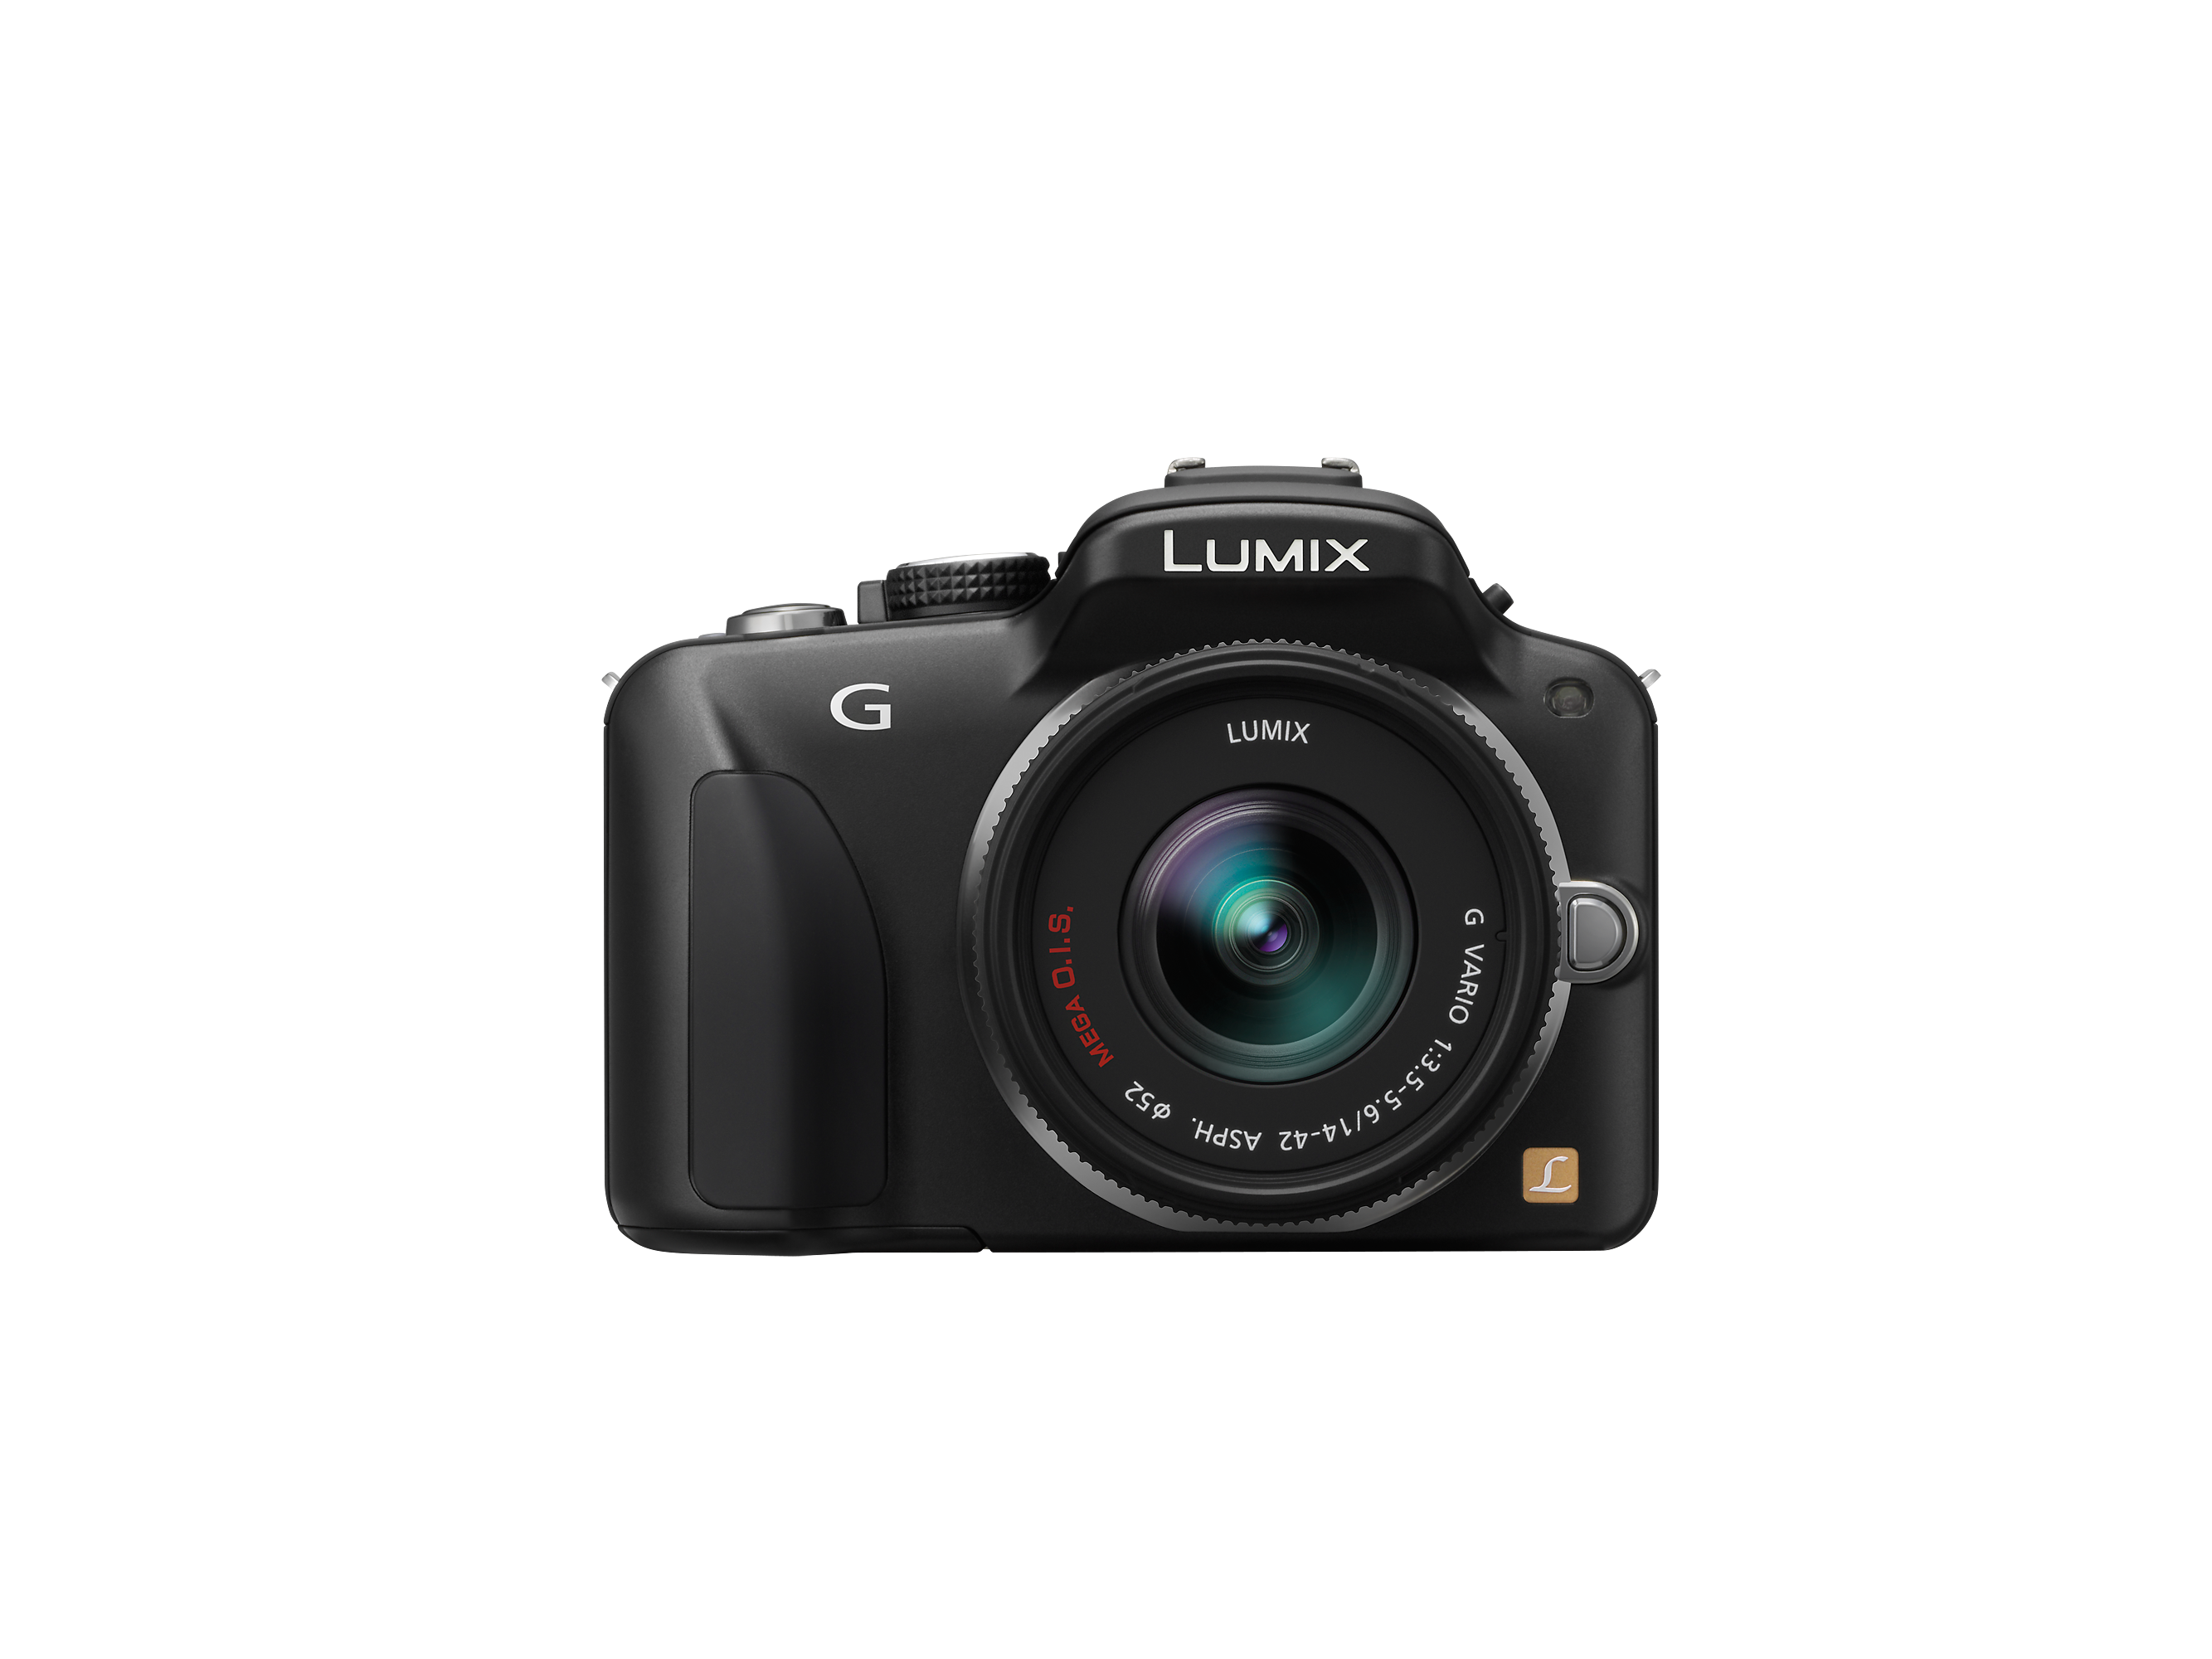 lumix camera hi tech - photo #13